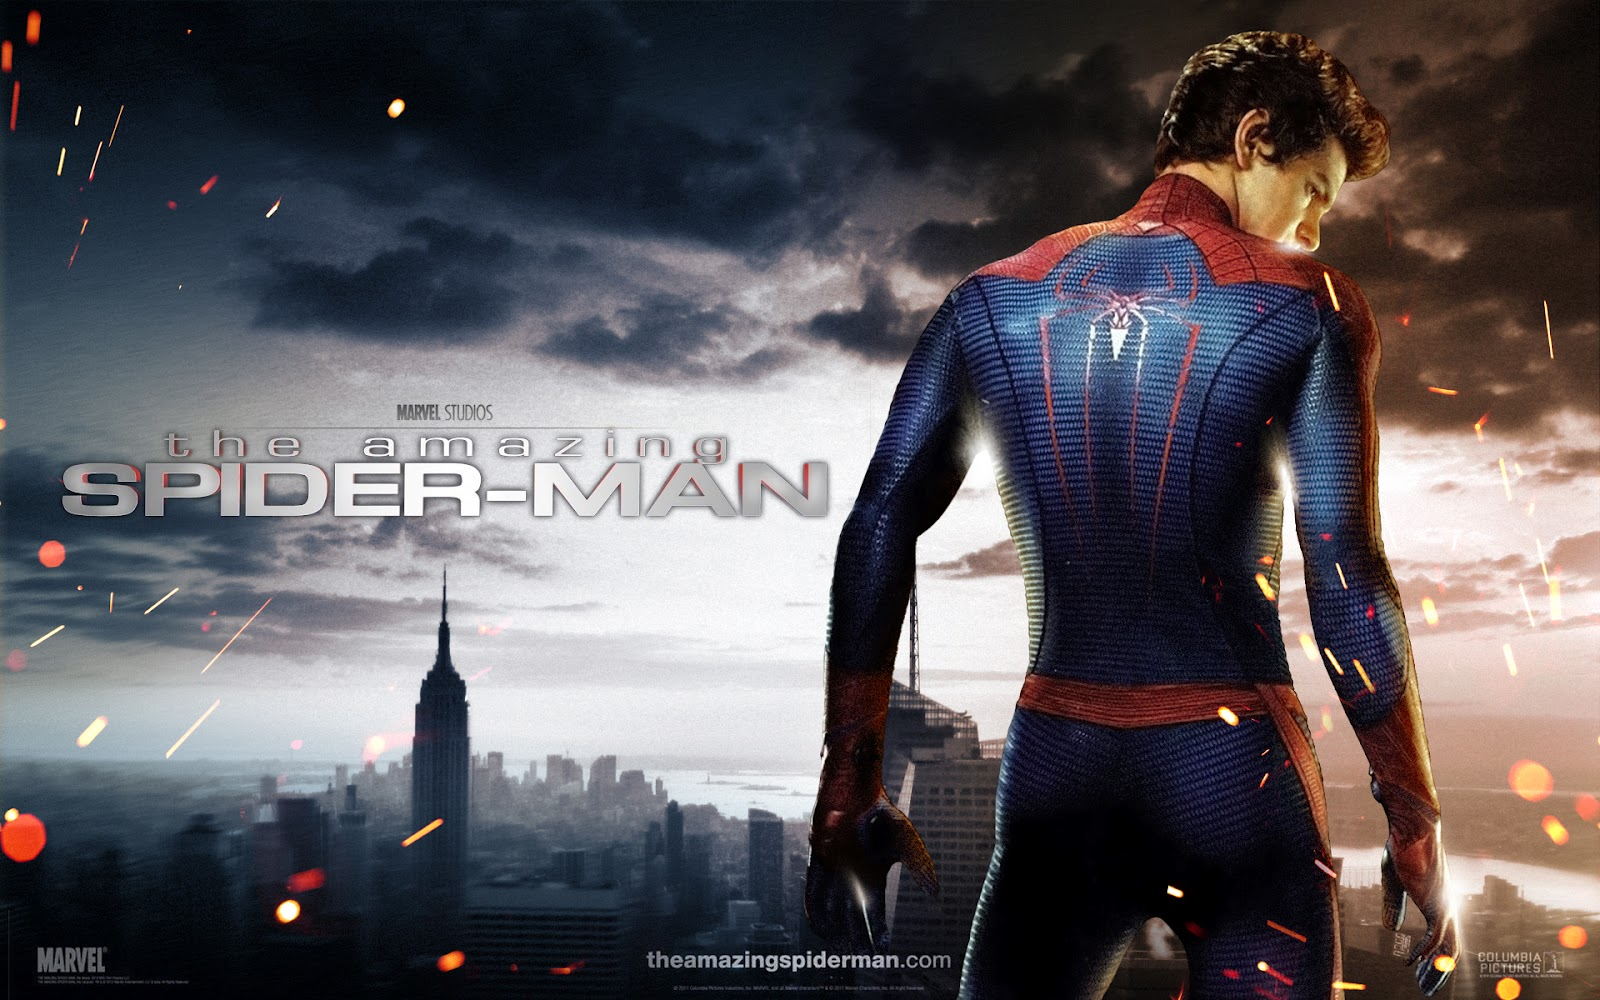 http://1.bp.blogspot.com/-A0fBcKiADHU/UCJI5mnT4qI/AAAAAAAAB18/zPftF4_zwsY/s1600/the-amazing-spiderman-(2012)-Full-Movie-Watch-Online.jpg